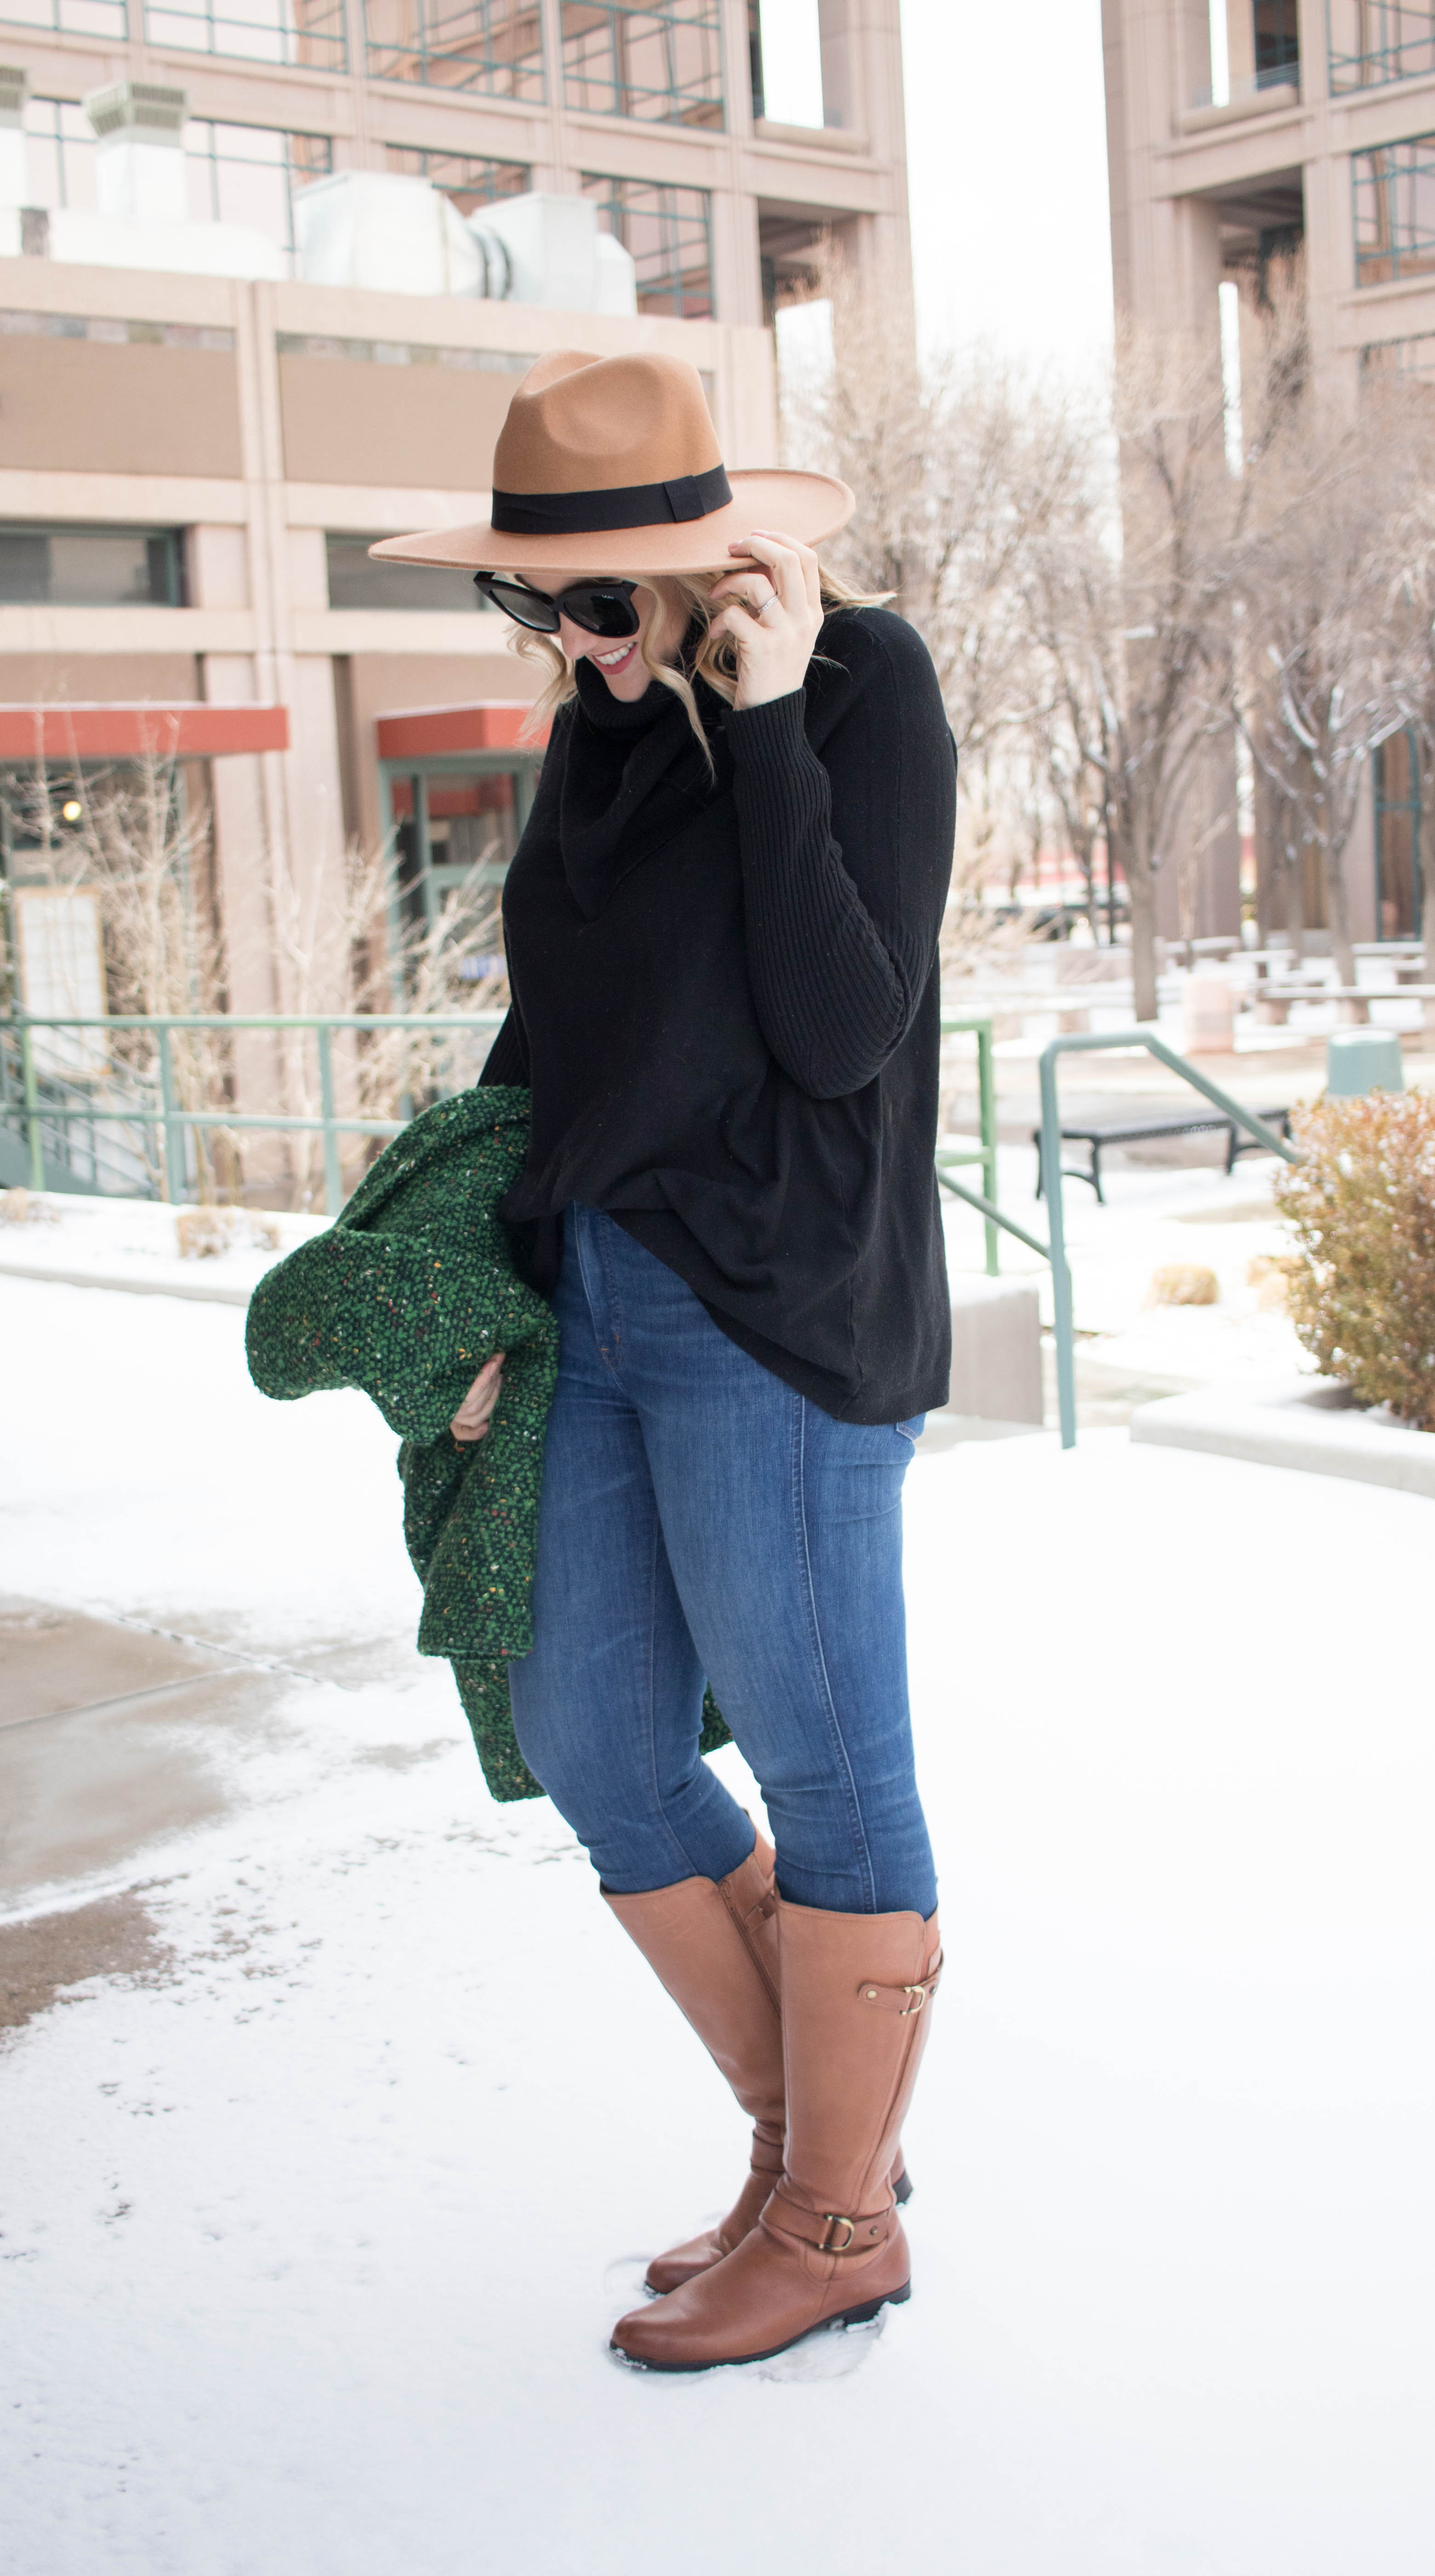 how to style riding boots for winter #winterfashion #ridingboots #tallfashion